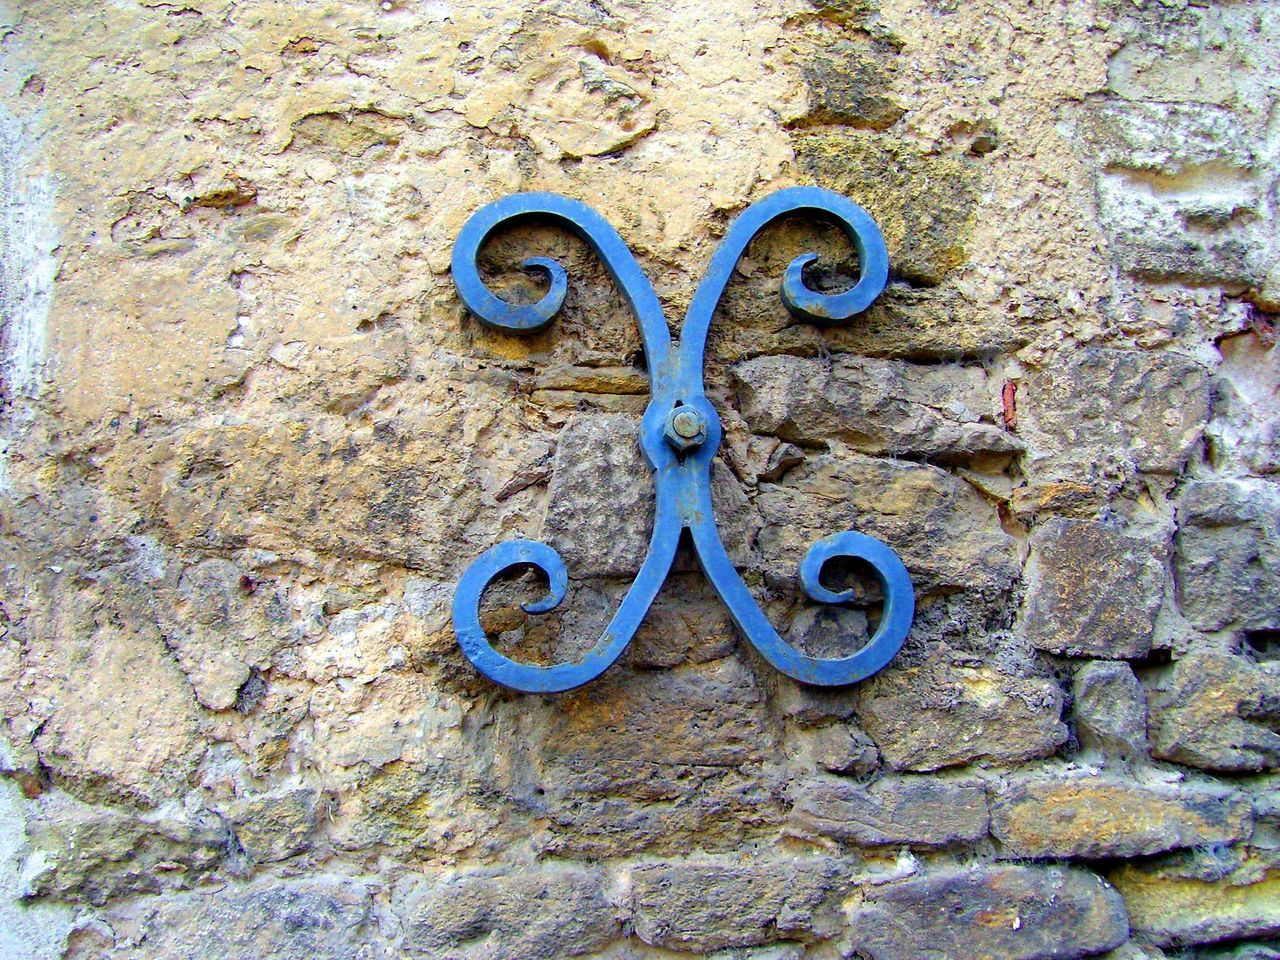 Architecture Built Structure Close-up Curly Cue Day Freshness Metal No People Outdoors Rough Textured  Wrought Iron X Shaped